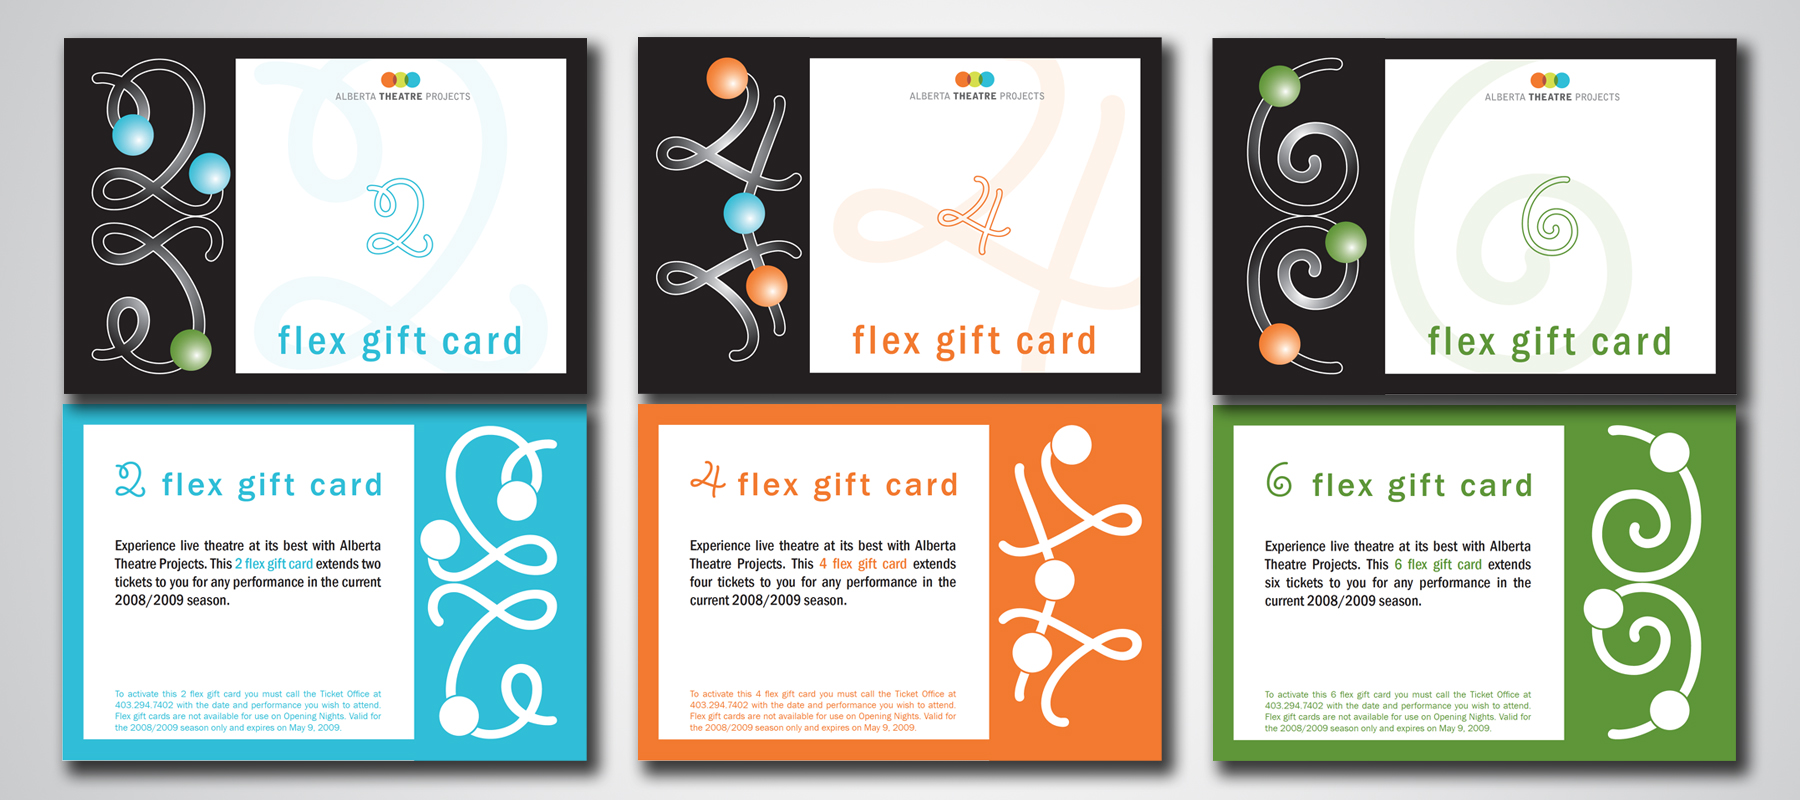 Alberta Theatre Projects | Flex Gift Cards